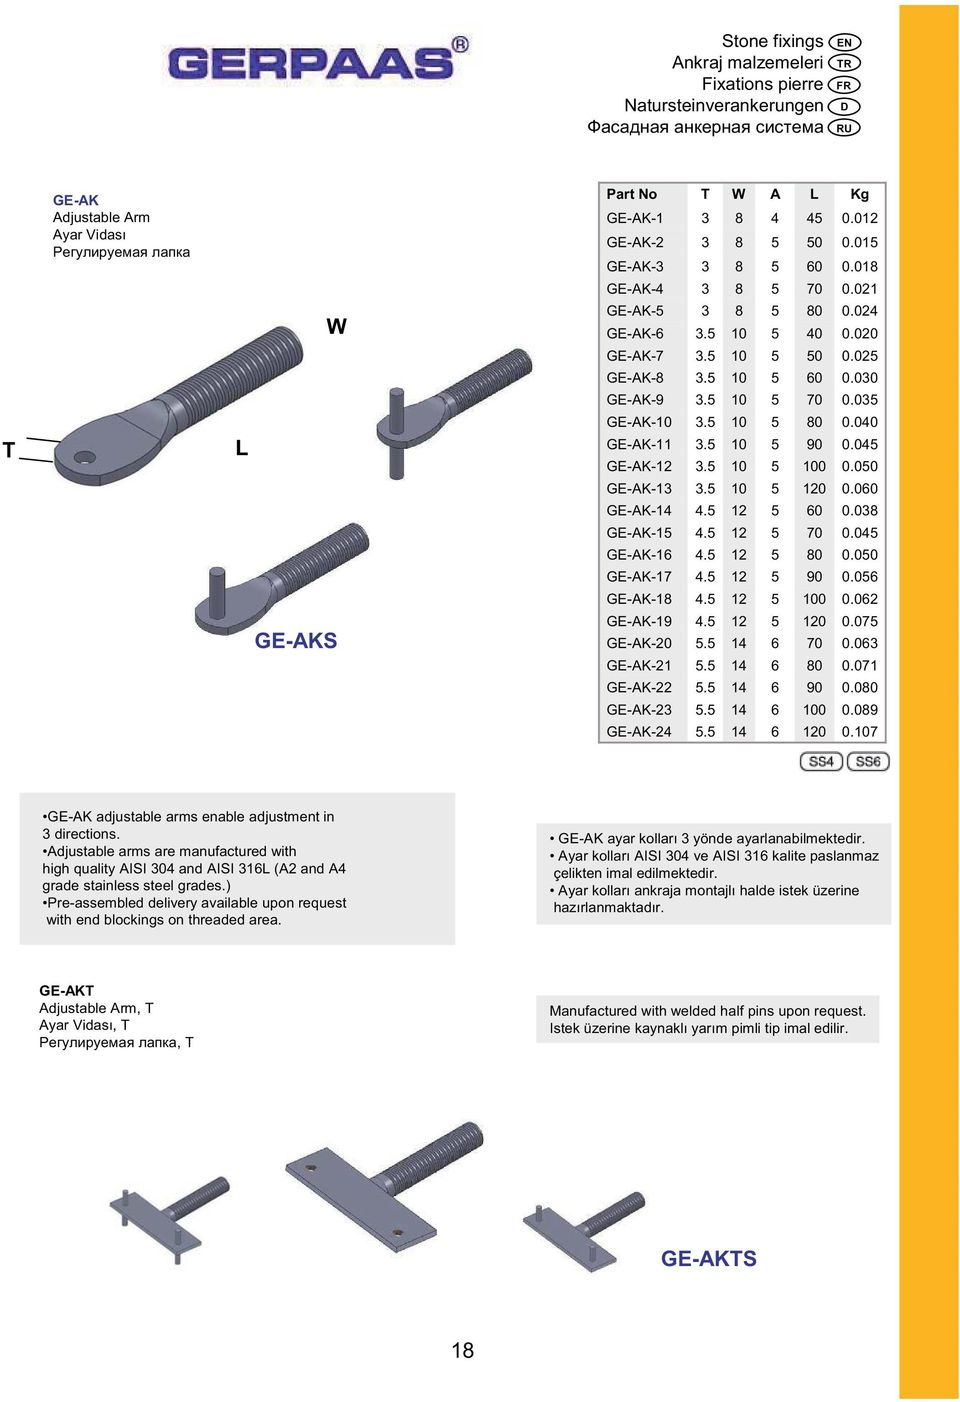 GE-K adjustable arms enable adjustment in directions. djustable arms are manufactured with high quality ISI 0 and ISI 1 ( and grade stainless steel grades.